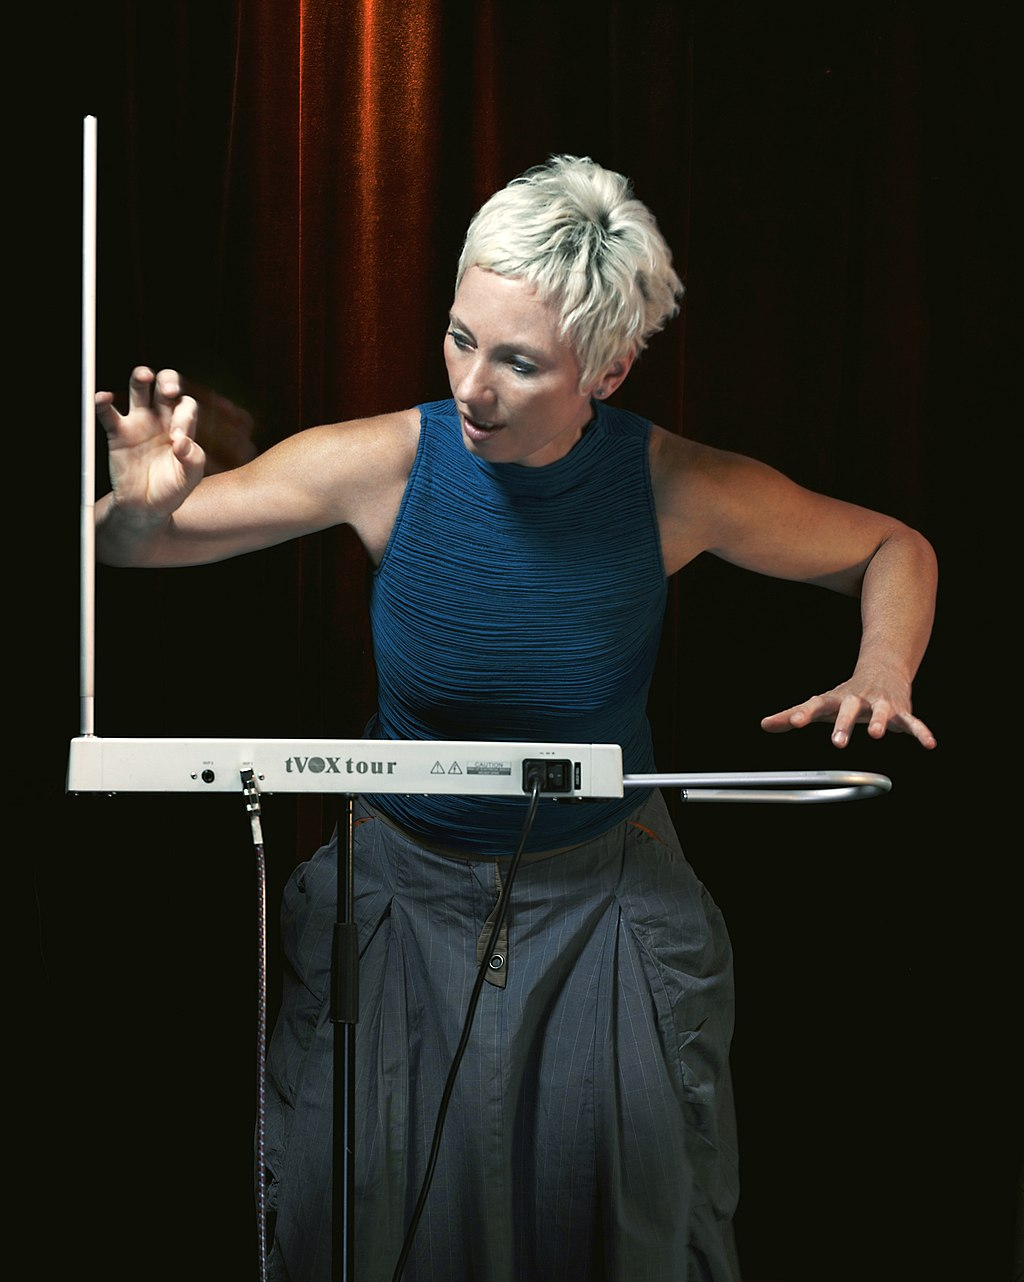 Barbara Buchholz playing TVox